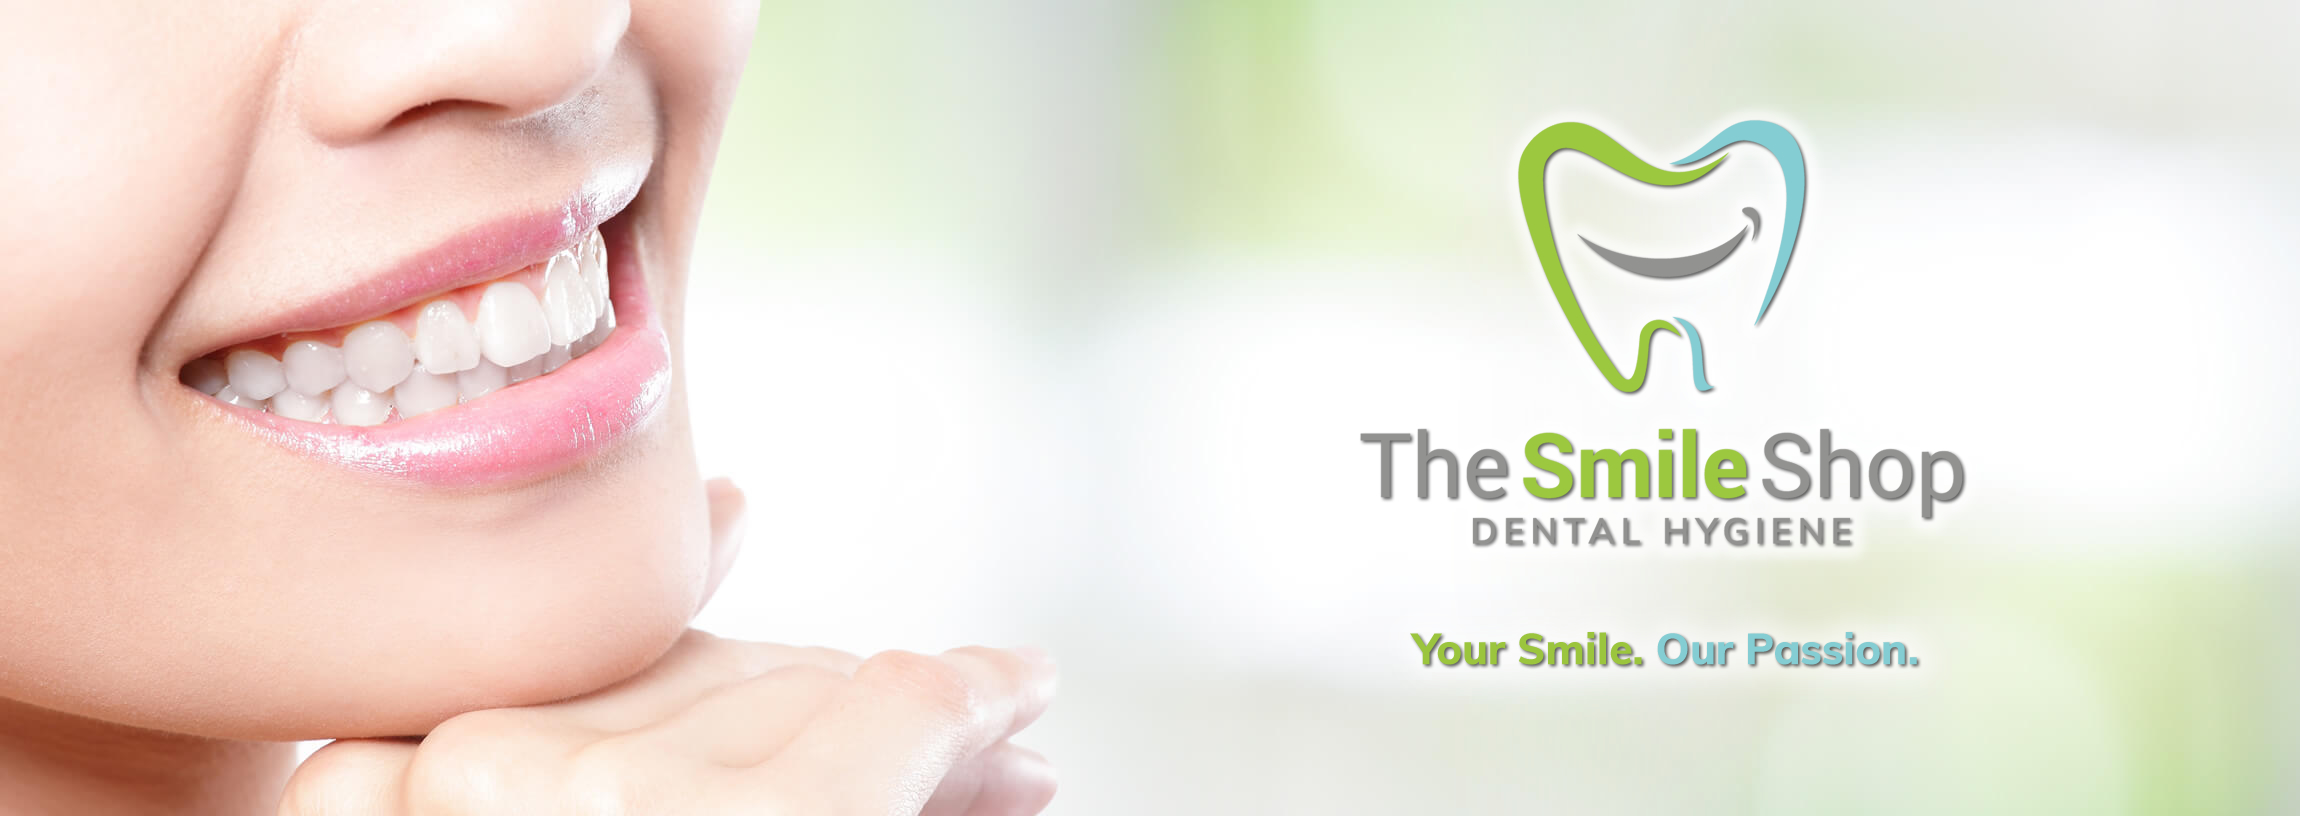 The Smile Shop - Dental Hygiene Clinic